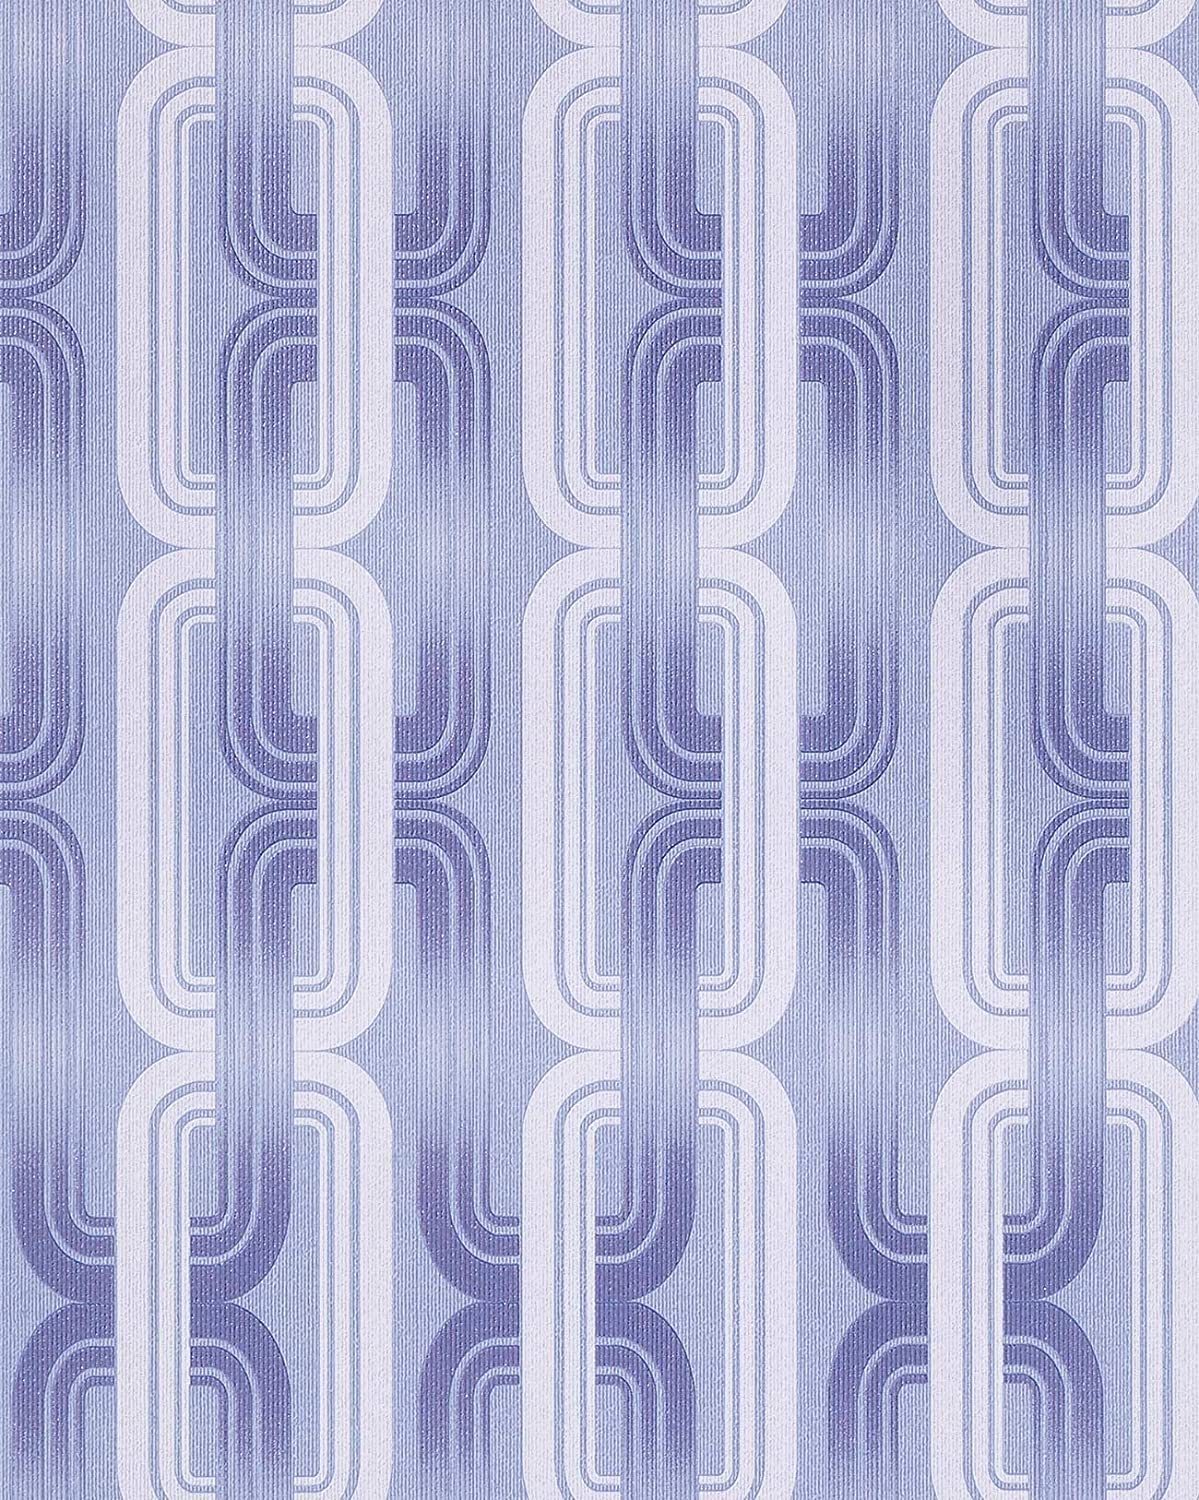 Retro 70s style wallpaper wall EDEM 038-22 graphical pattern pastel ...